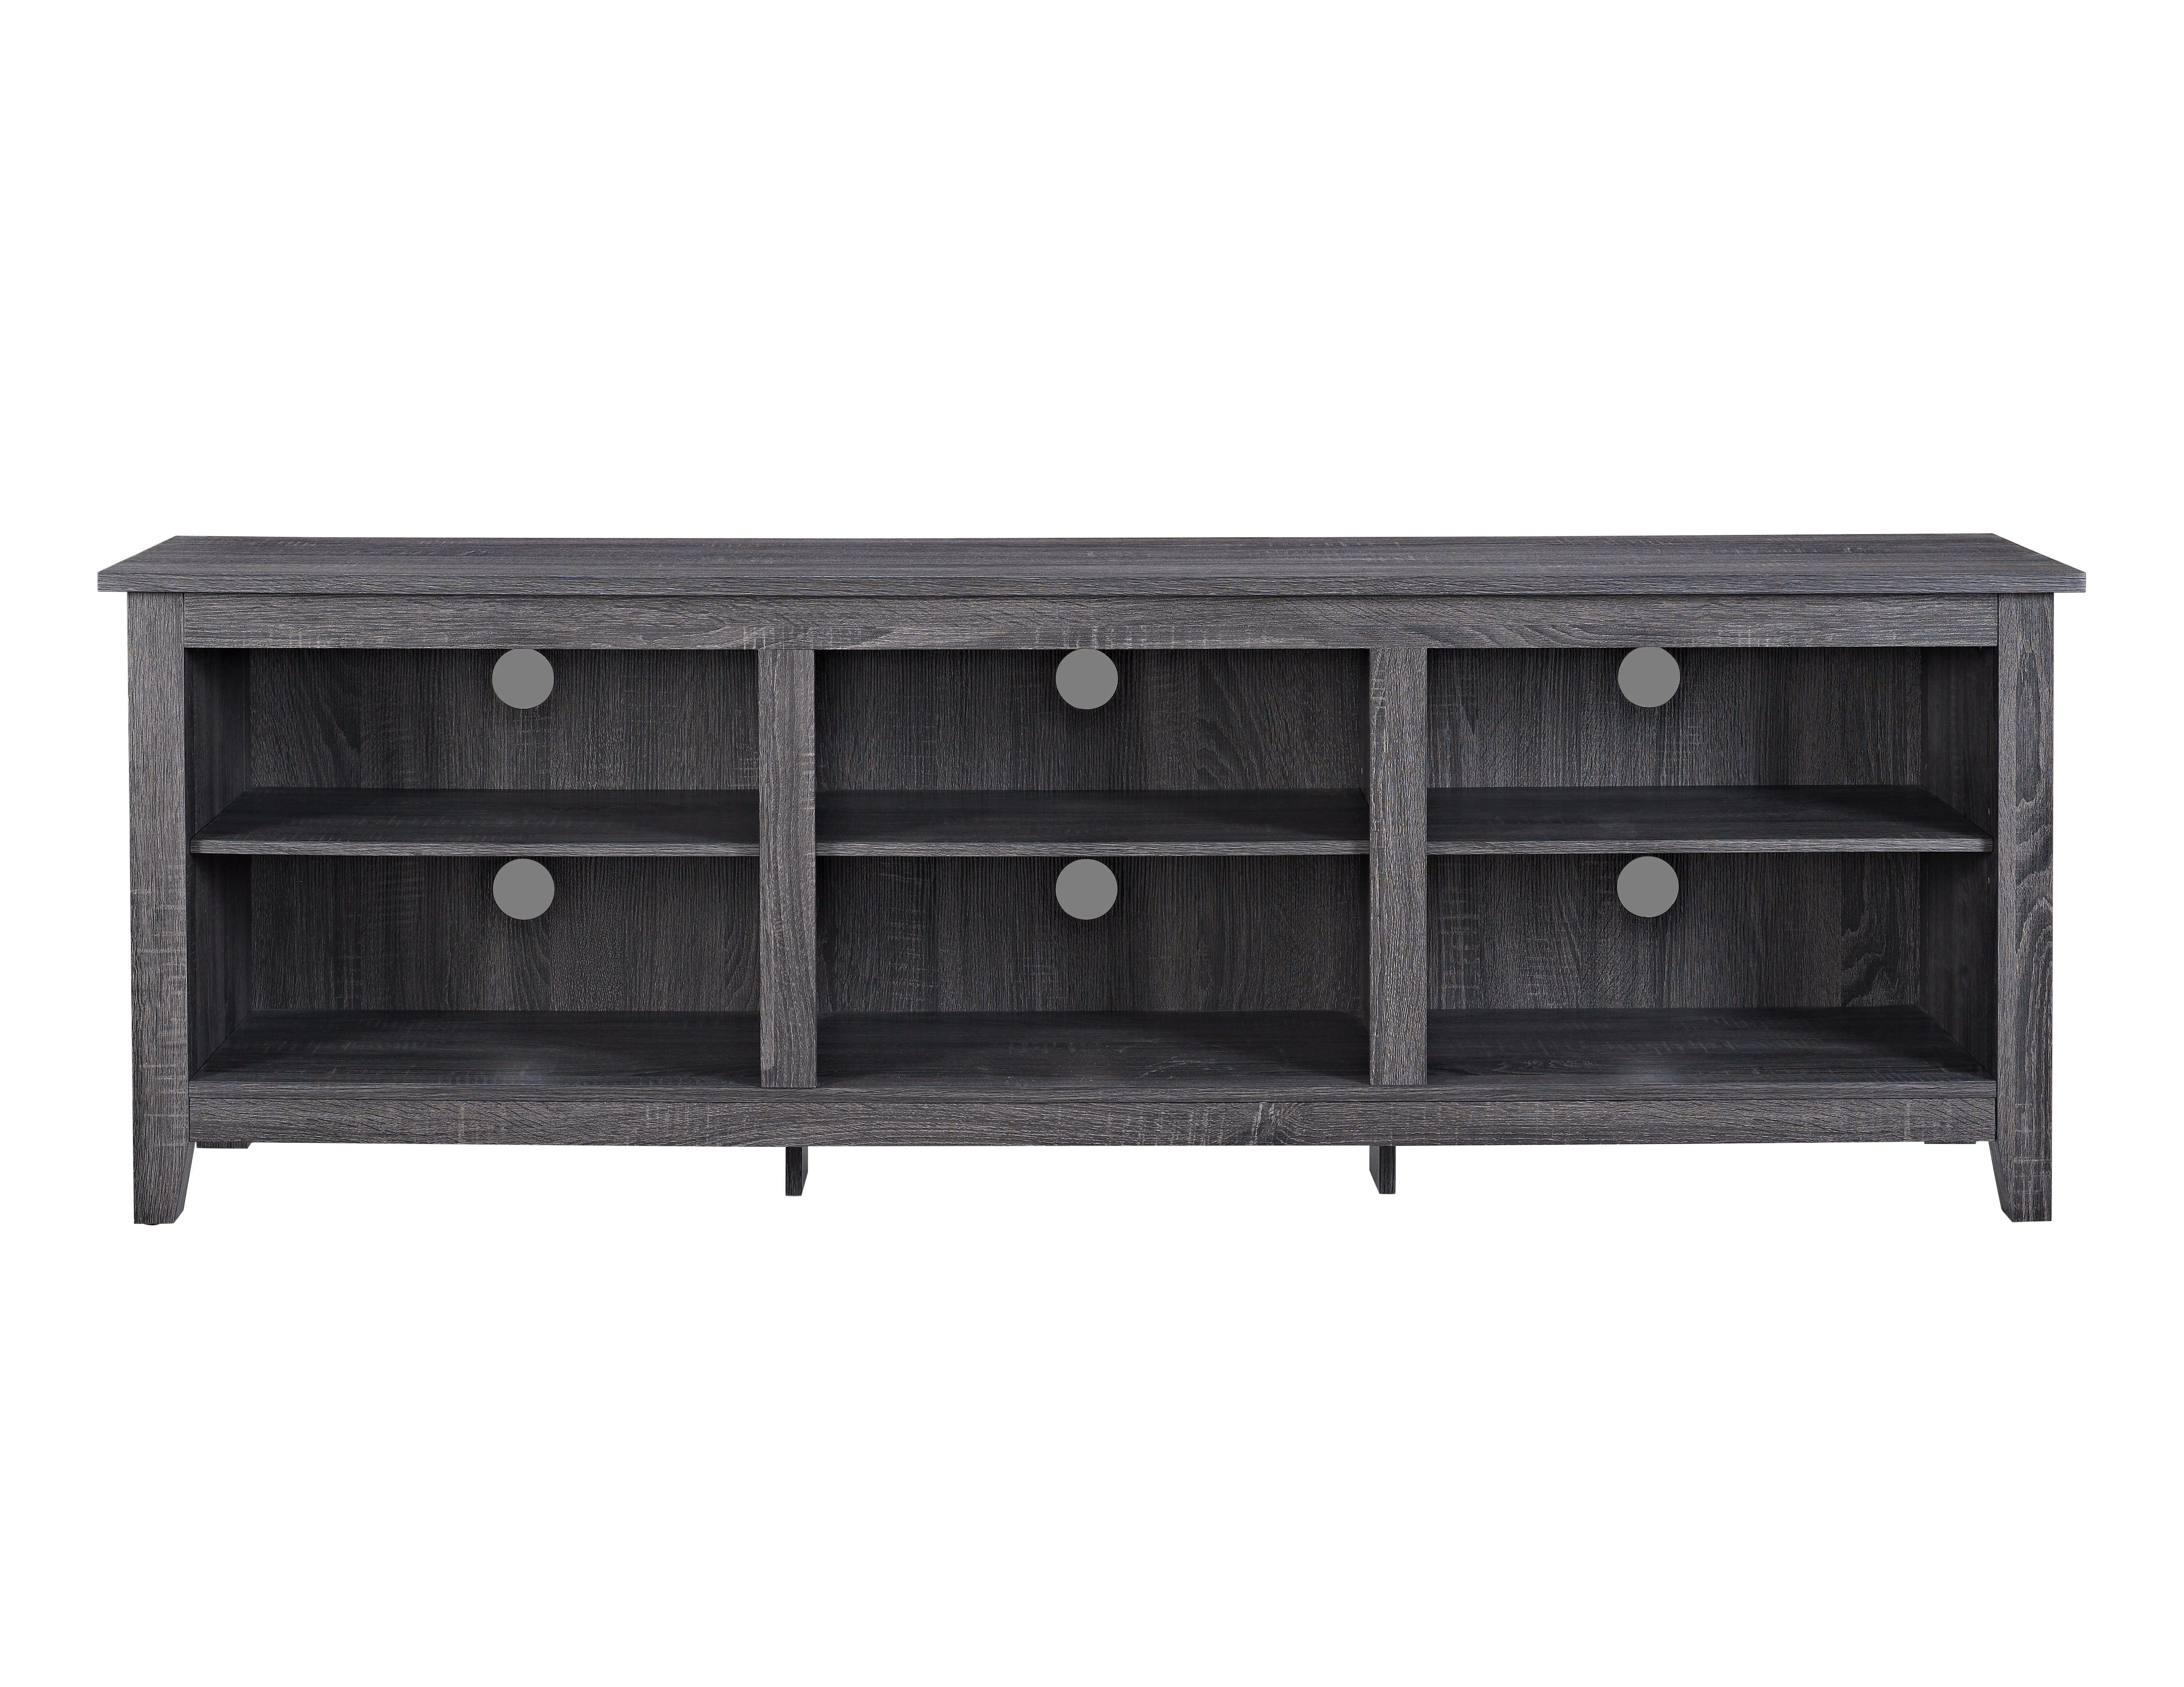 Modern 70 Inch Tv Stands + Entertainment Centers | Allmodern with regard to Walton Grey 60 Inch Tv Stands (Image 19 of 30)